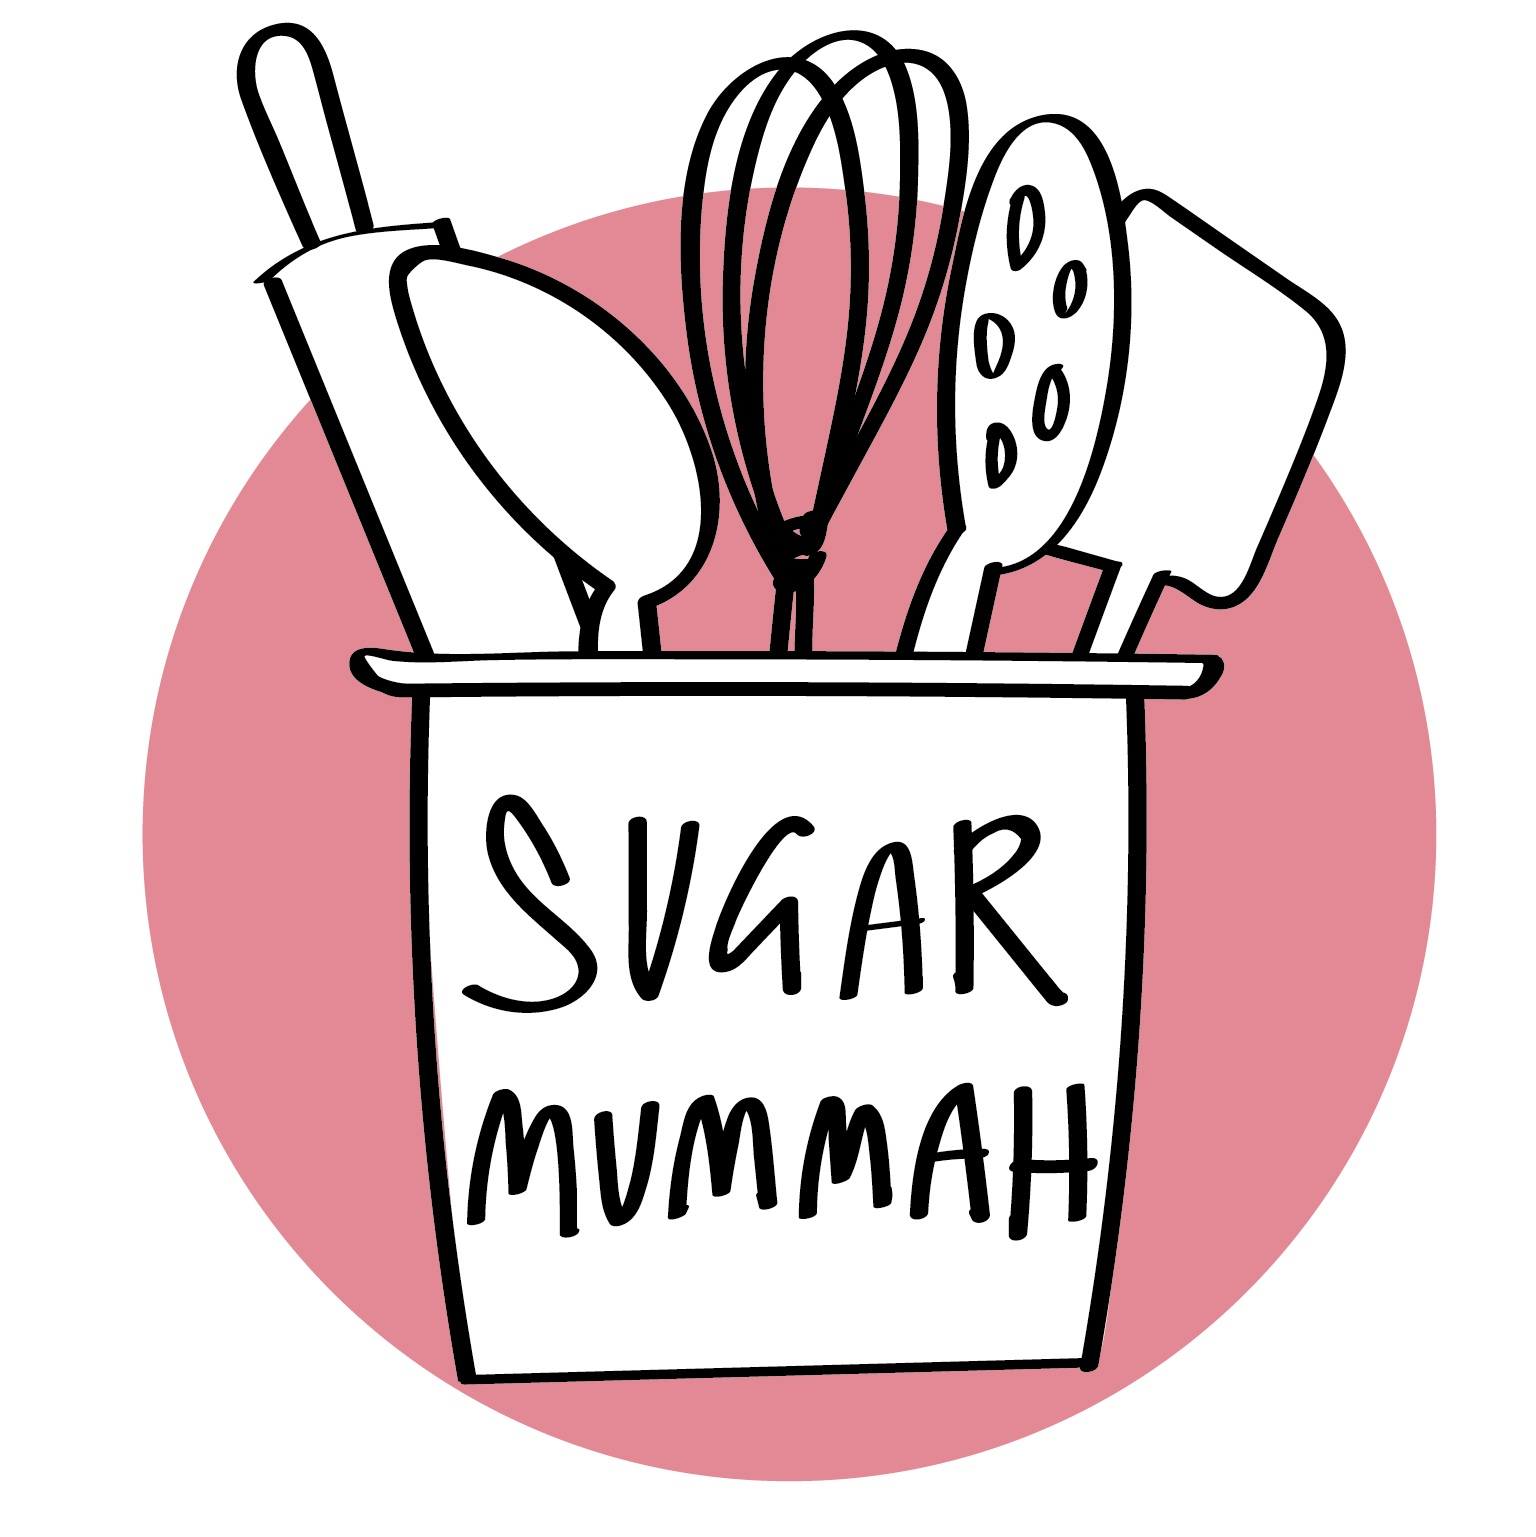 Sugar Mummah: Supplier of Sweets and Biscuits for Cafes and Events.